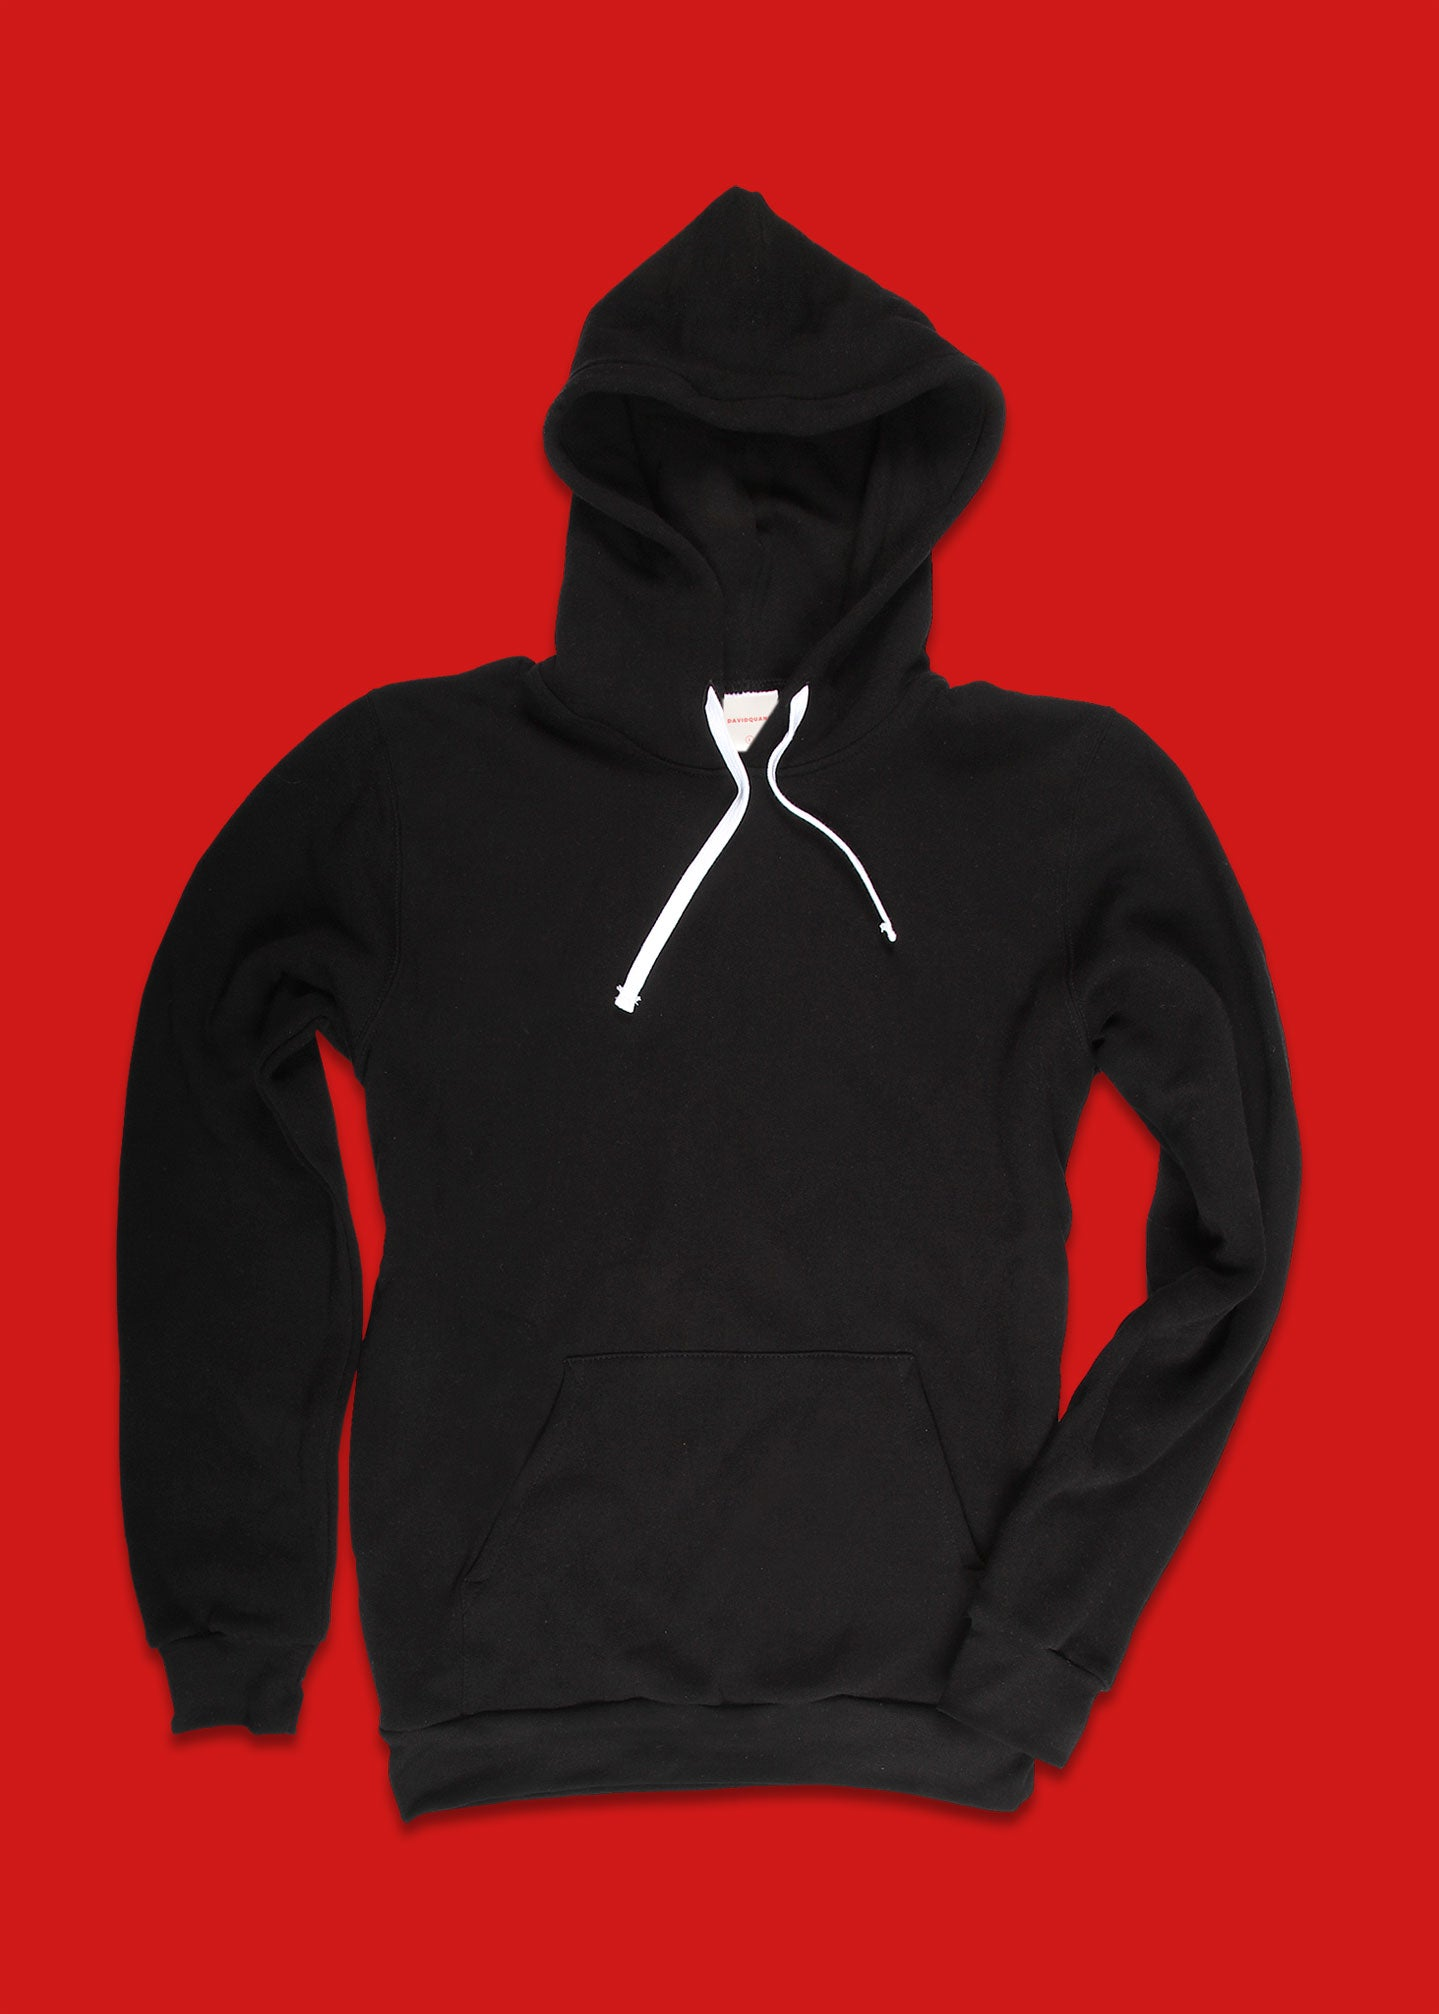 Men's Black Fleece Hoodie